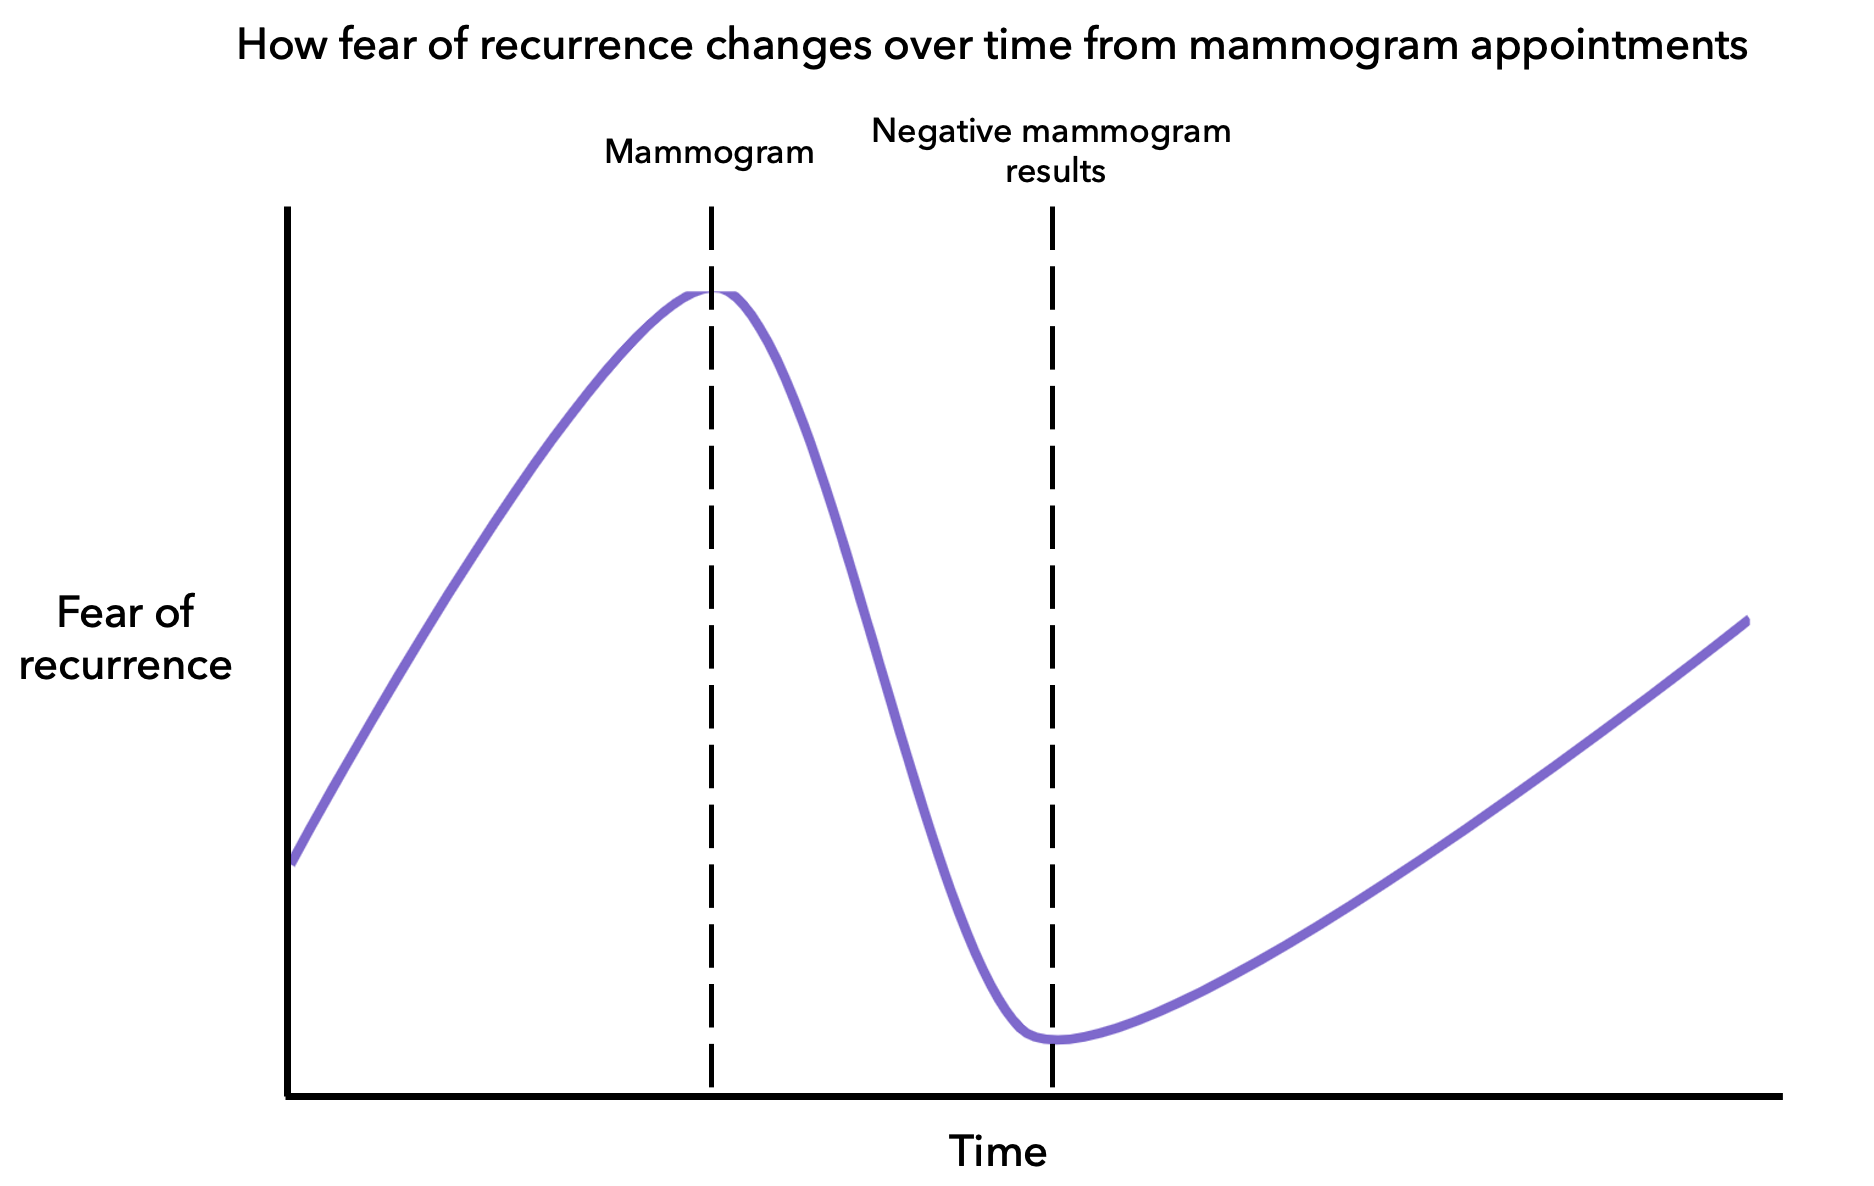 Diagram showing changes in fear of recurrence